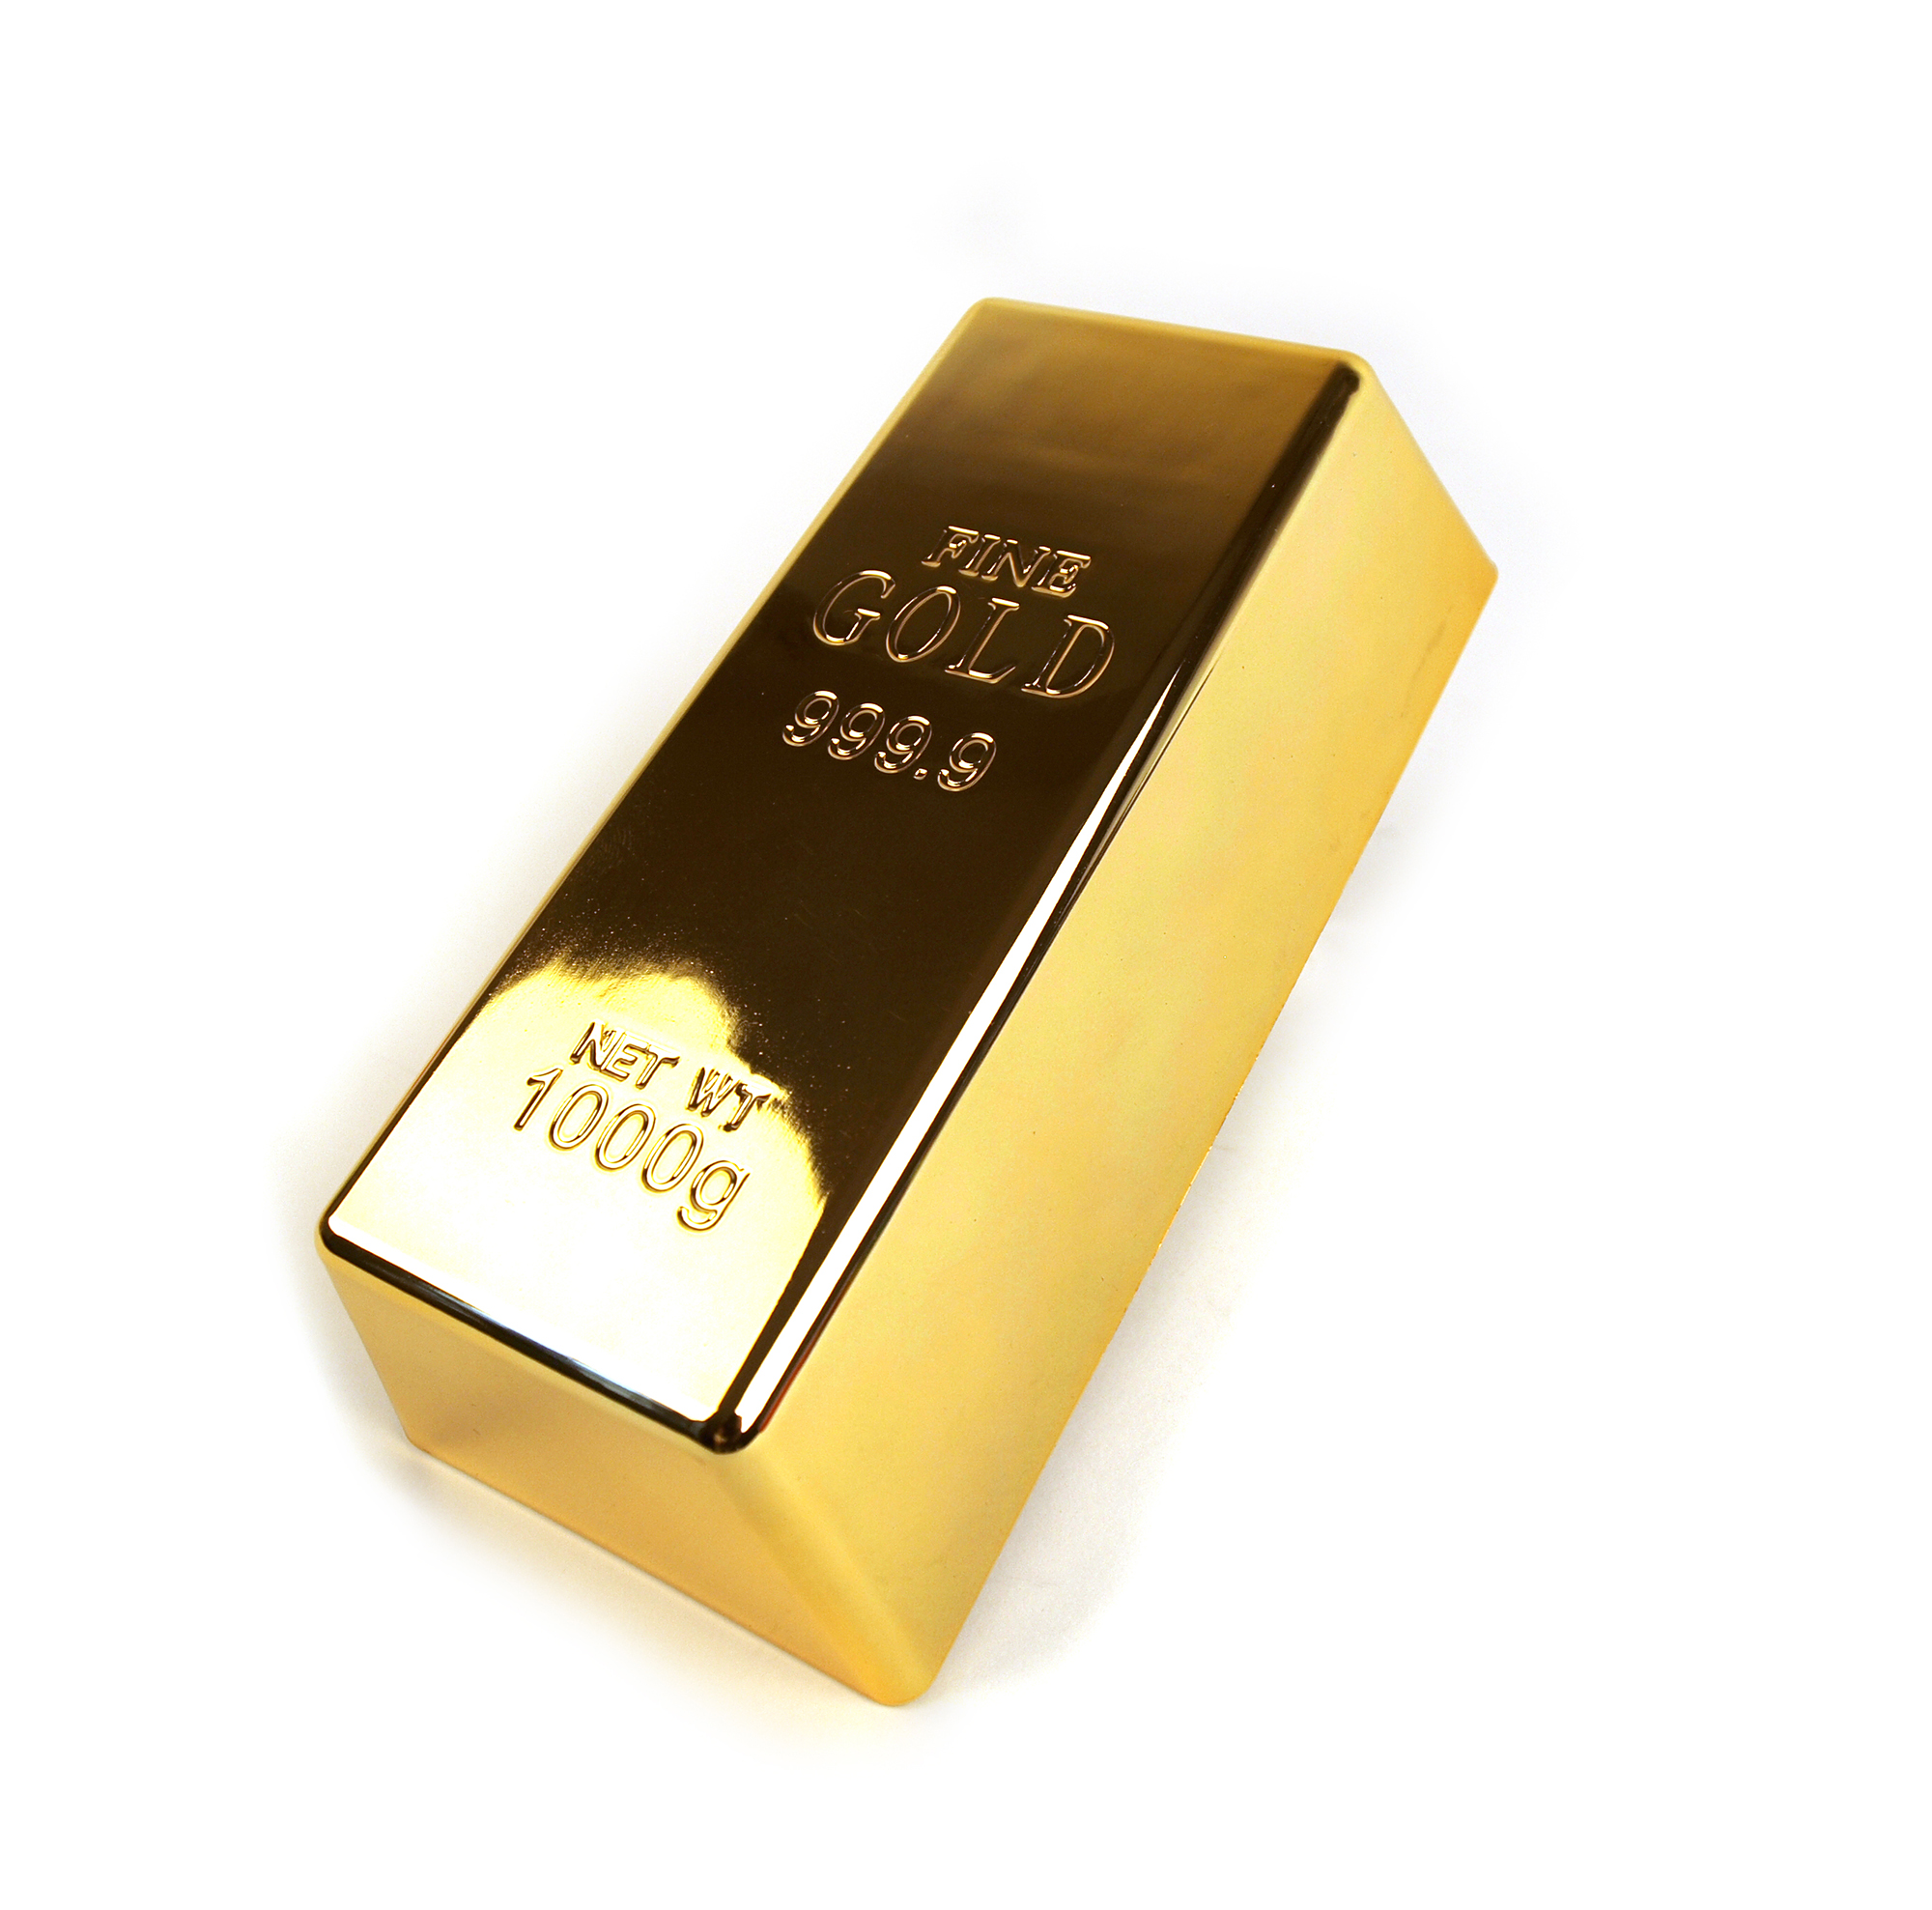 GOLD BAR Paperweight or Doorstop 1kg BULLION BAR